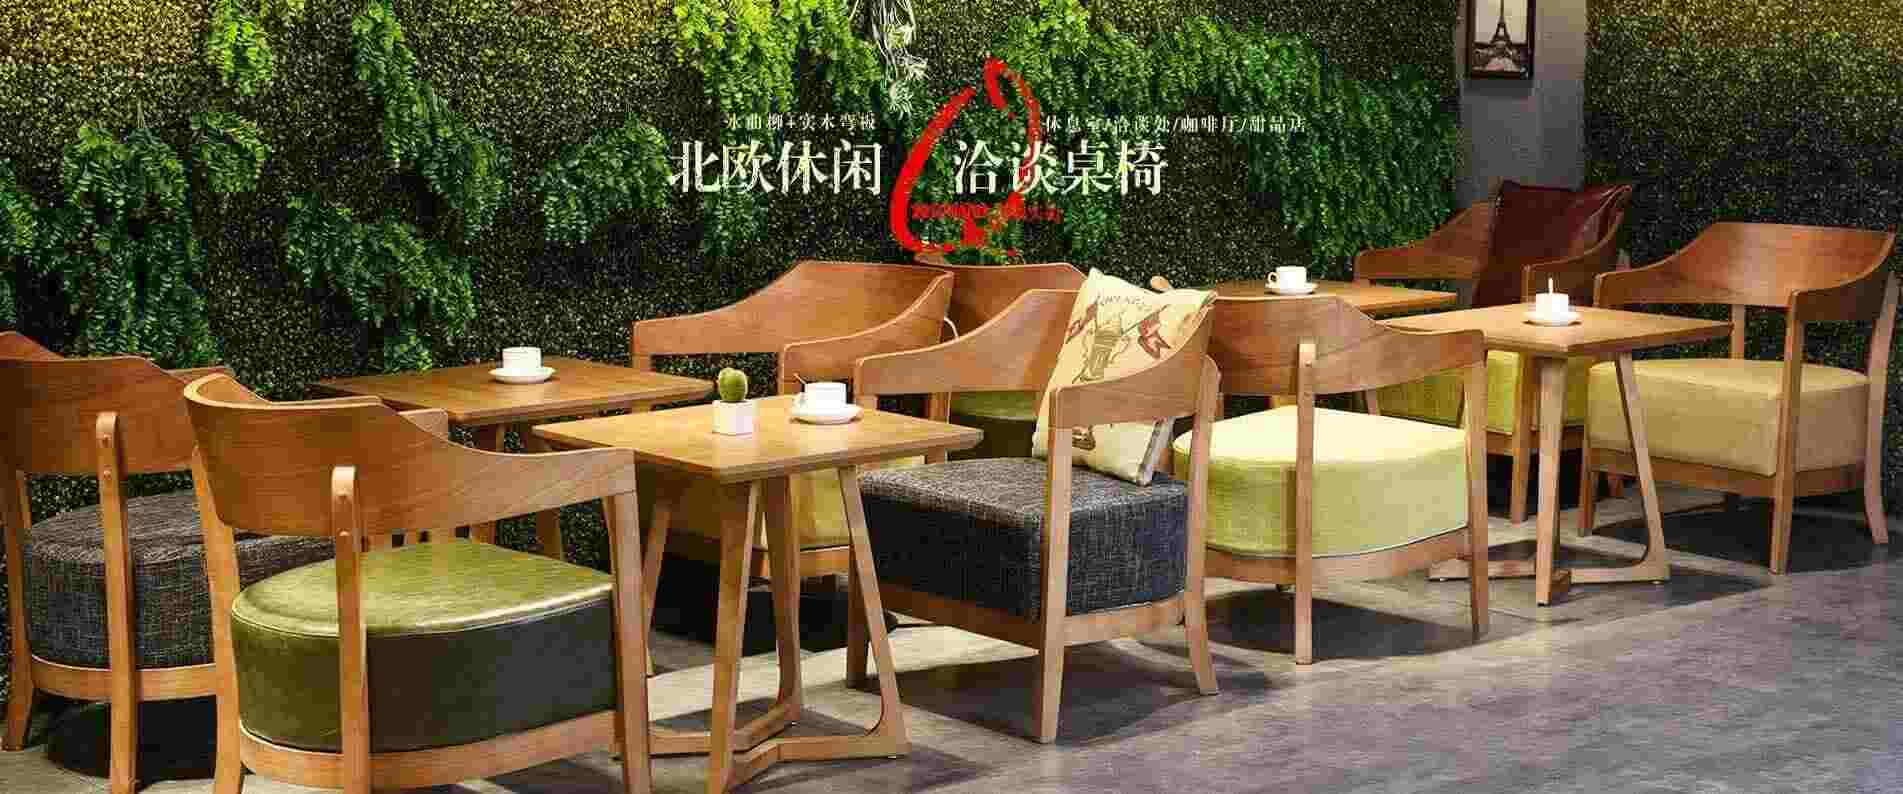 Mongolia Restaurant furniture